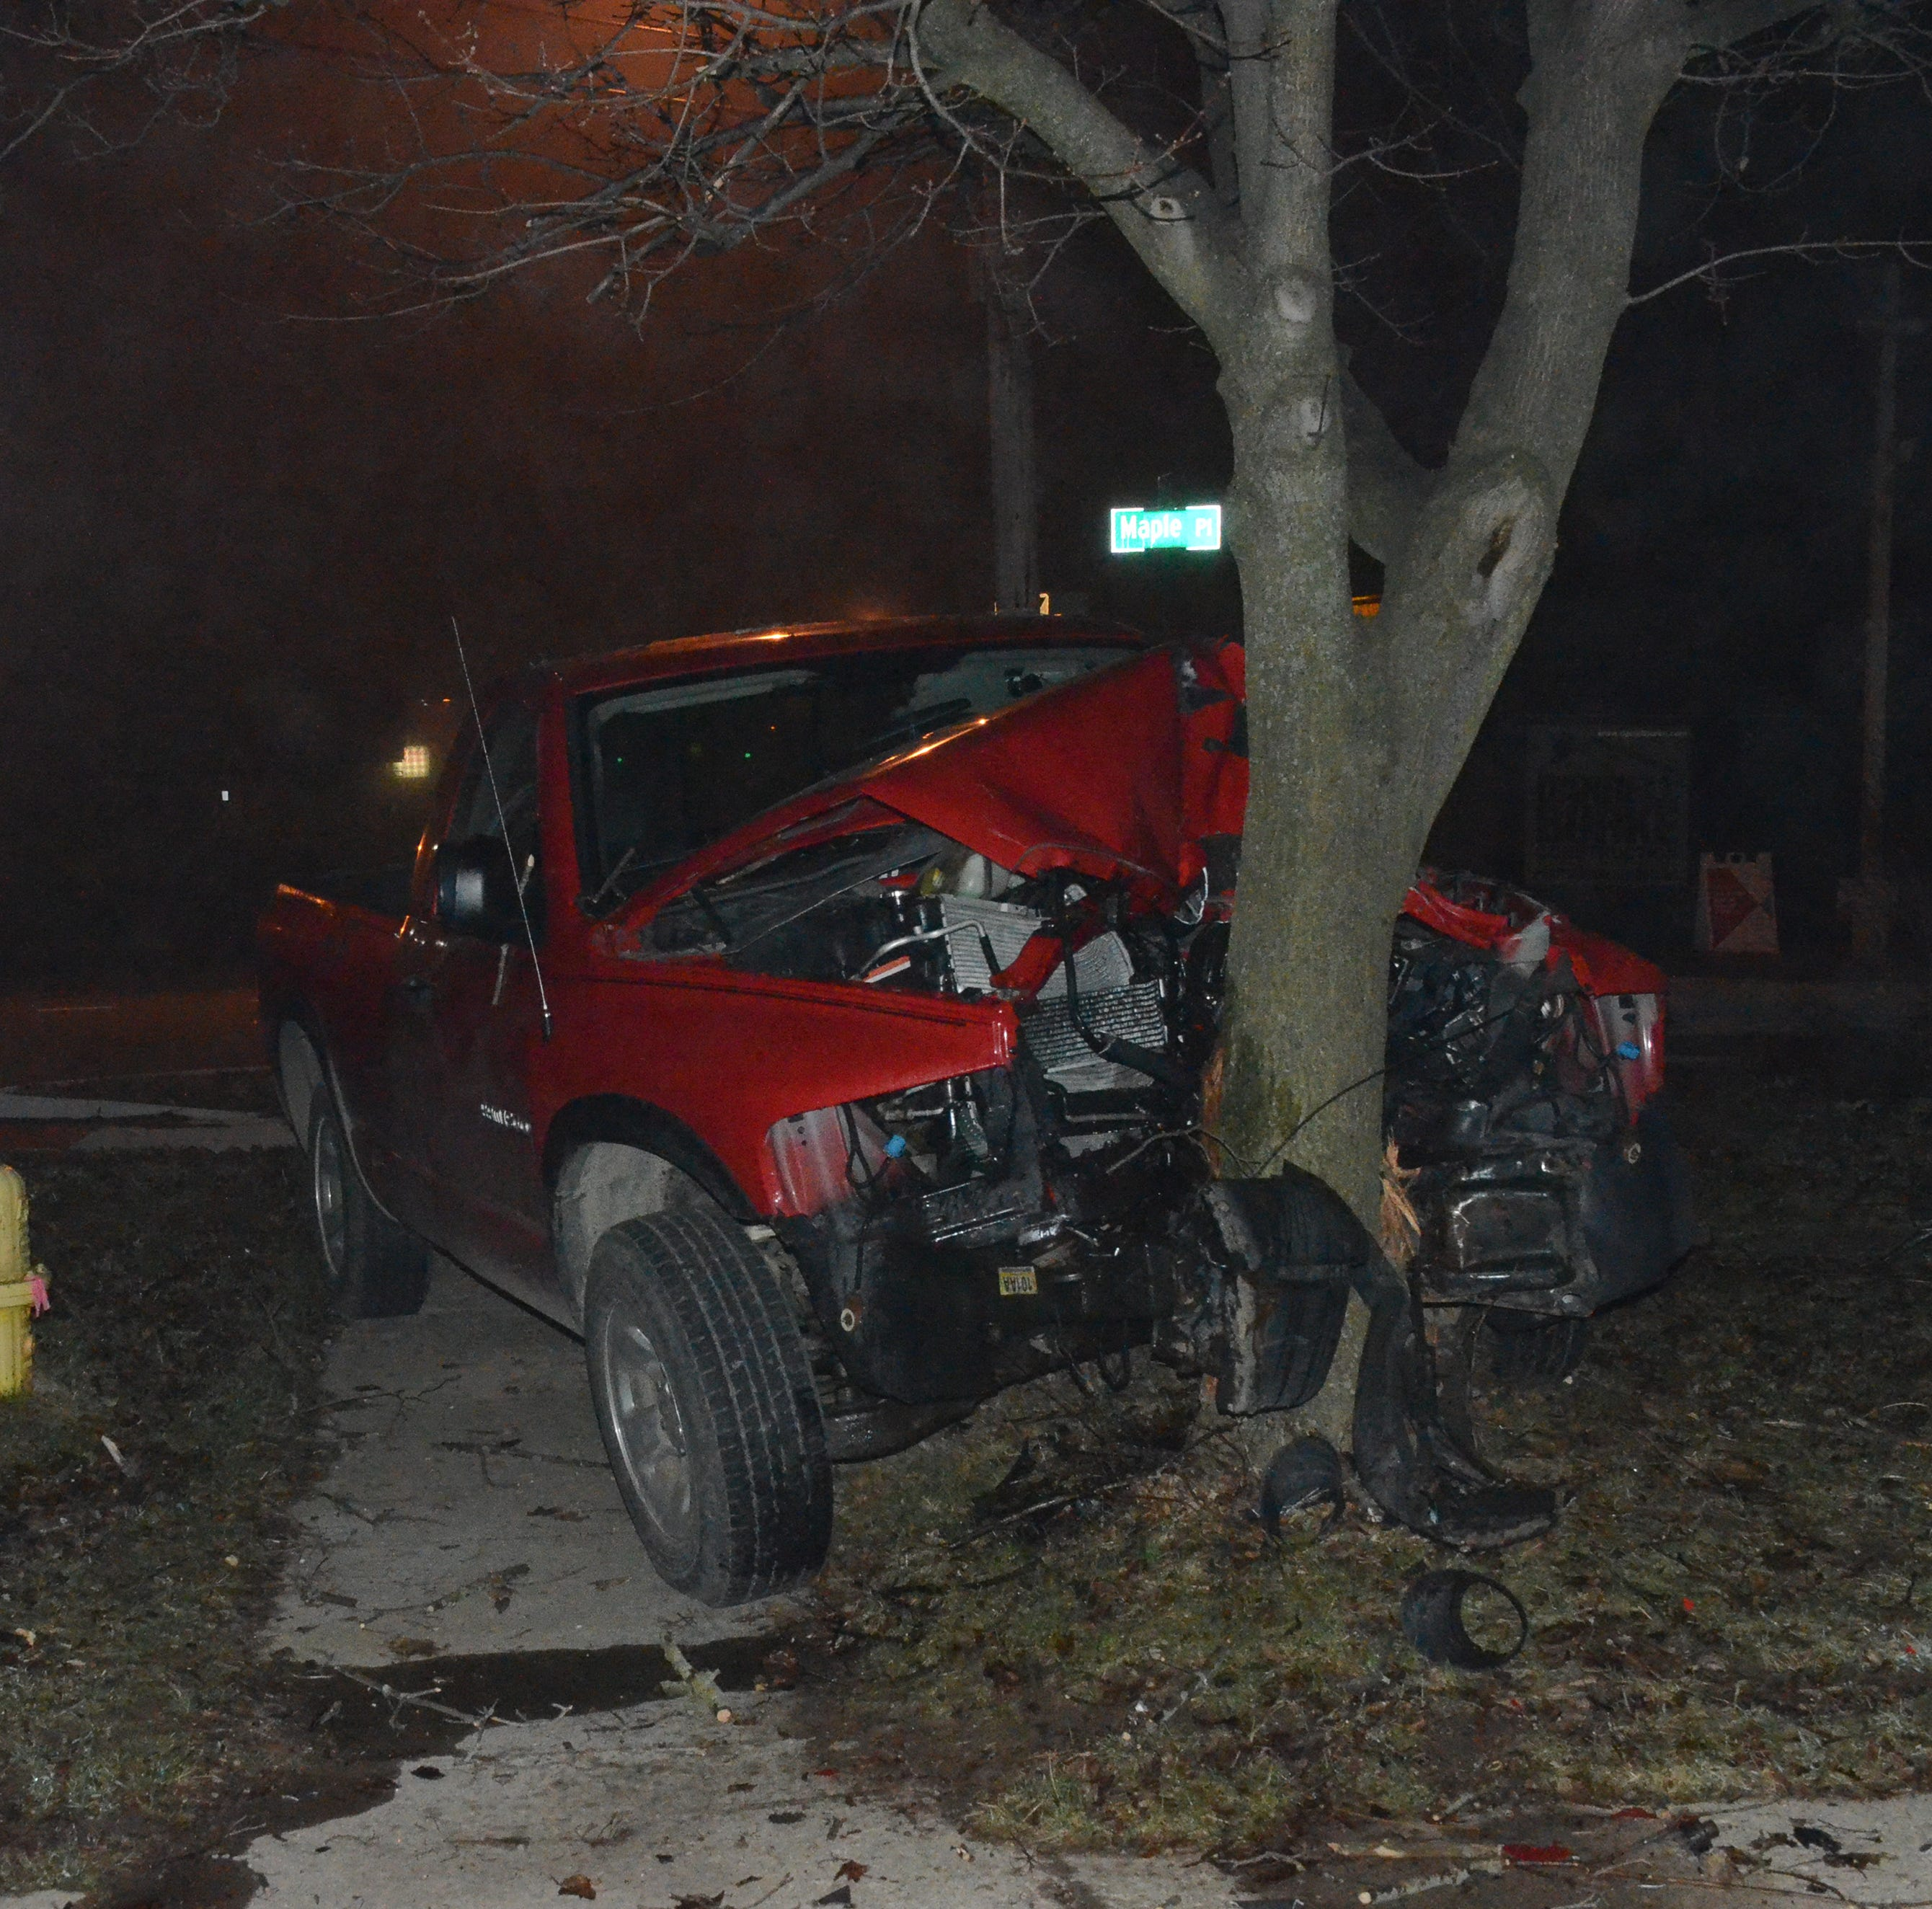 Police & Fire: Man arrested with gun, no injuries in a drunken driving crash